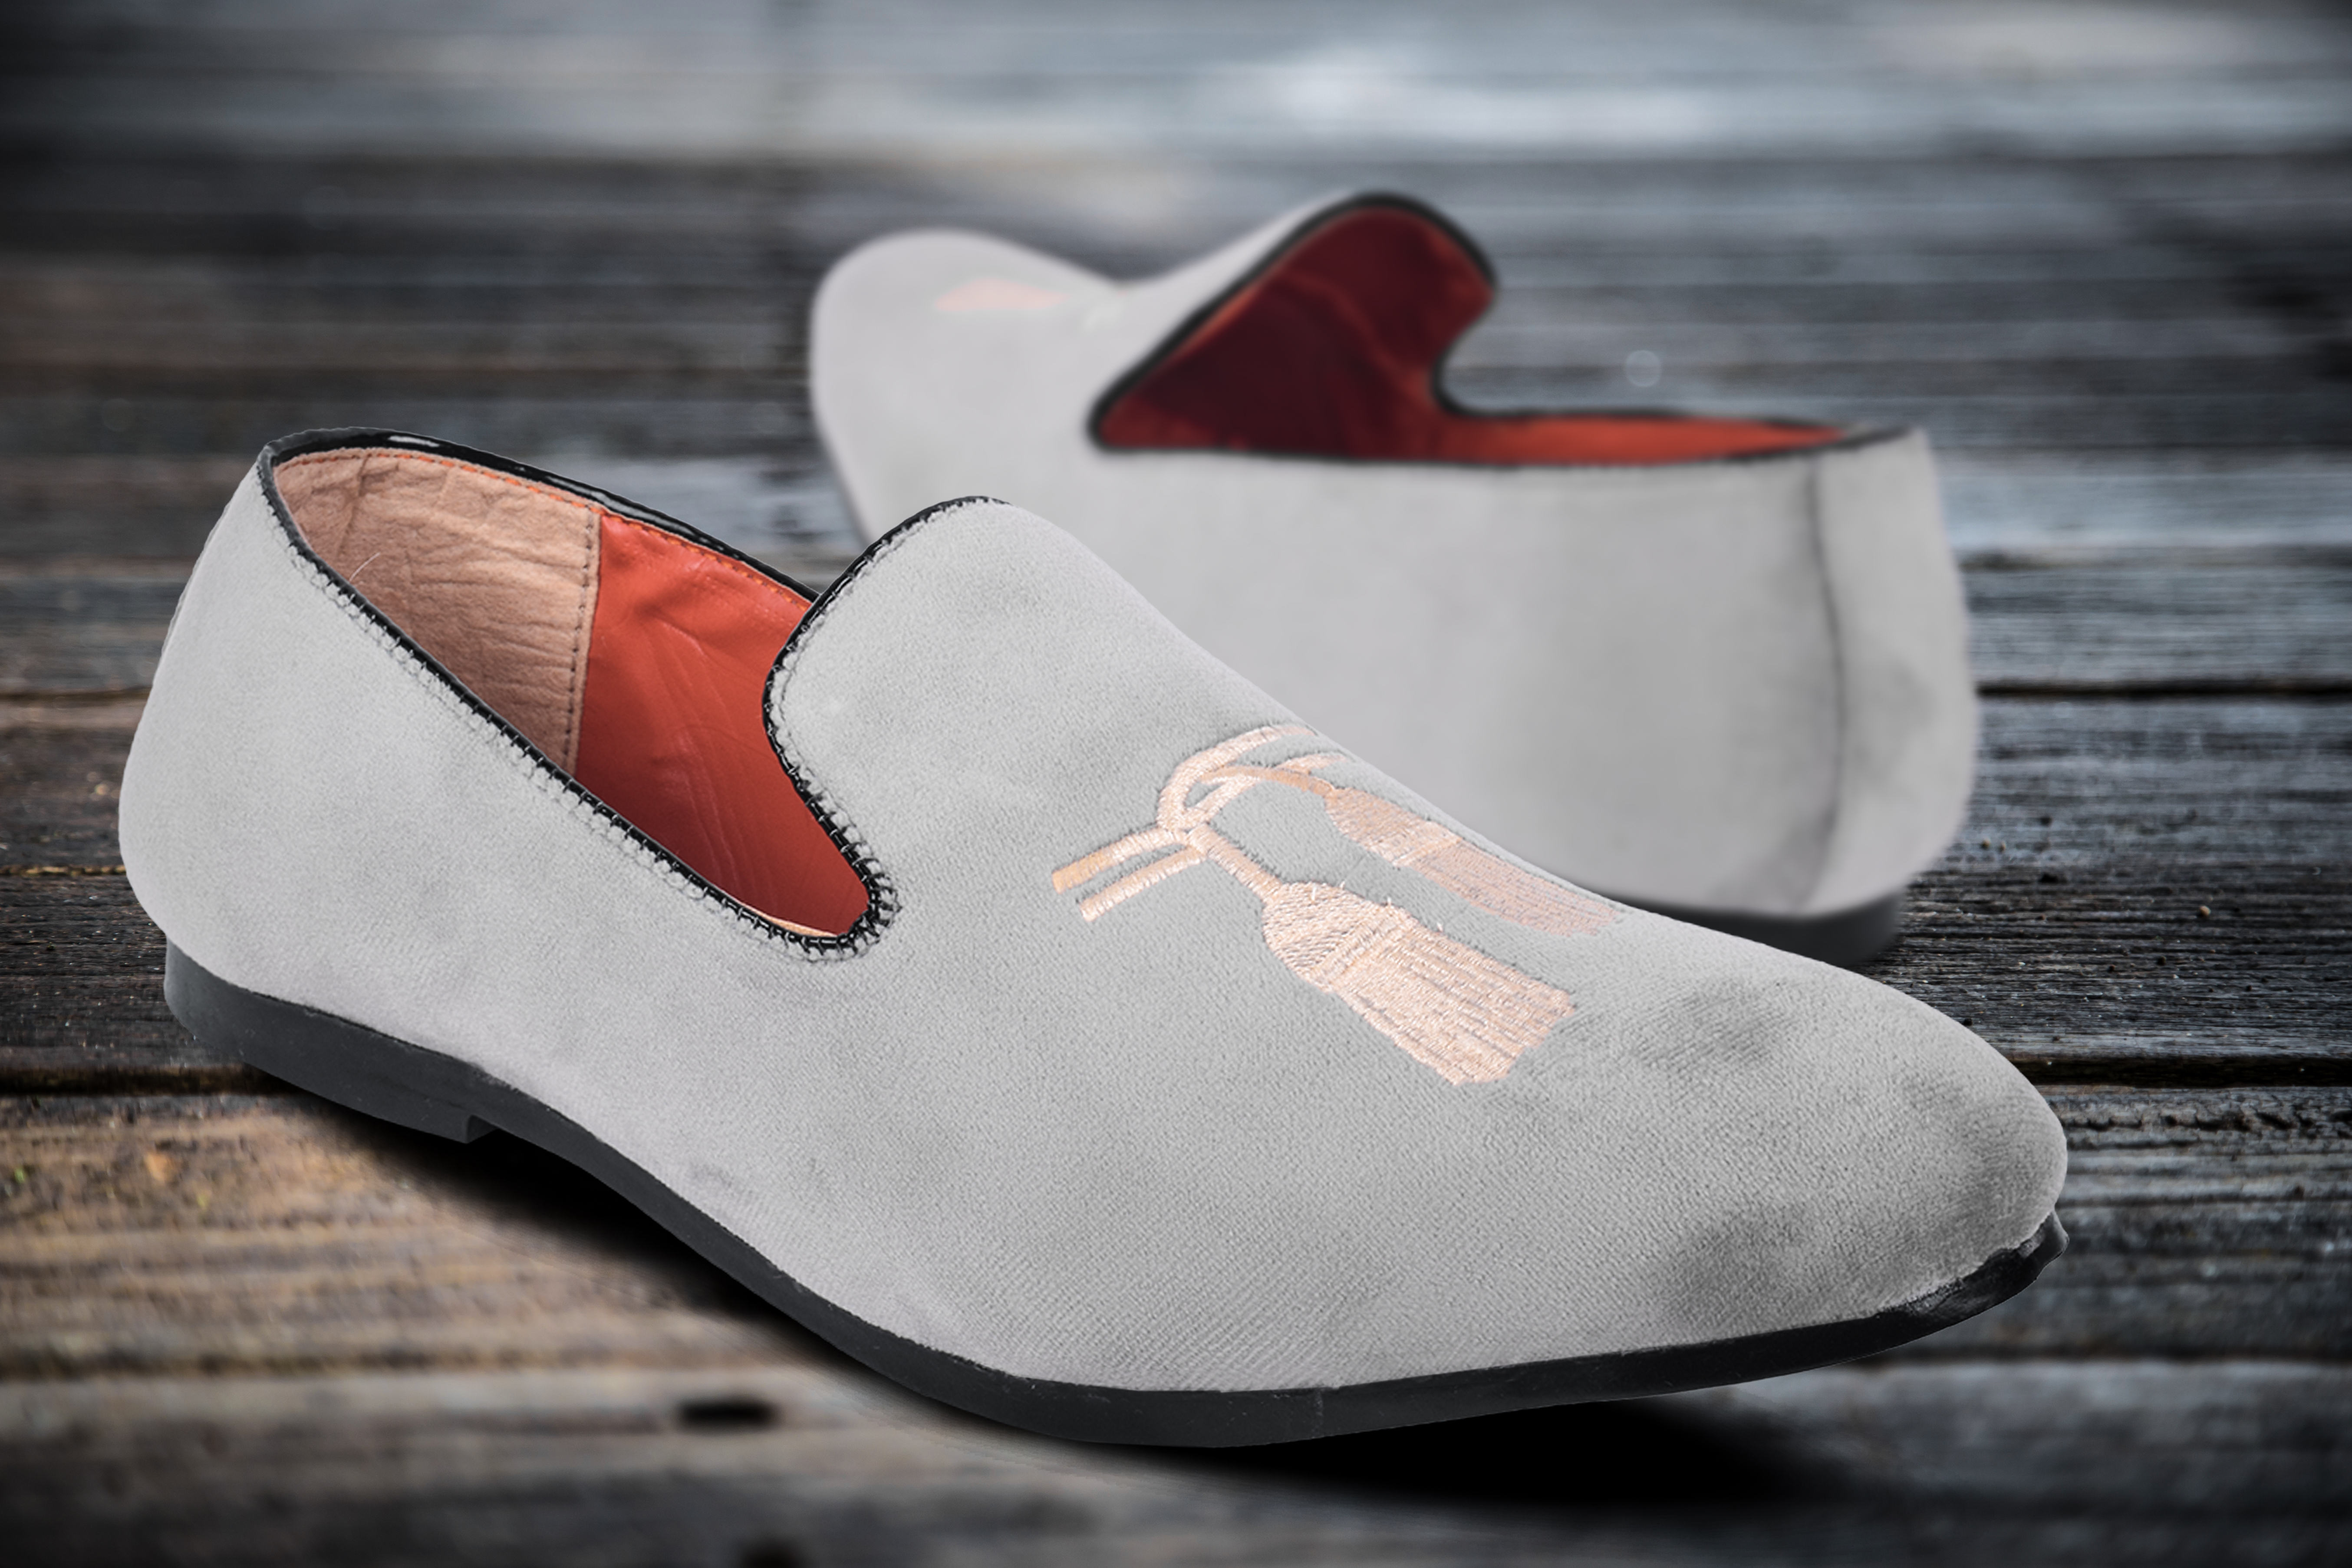 Trendy Stylish Men's Formal Shoes In Fashionable Style 215__GREY (GREY, 7-10, 4 PAIR)